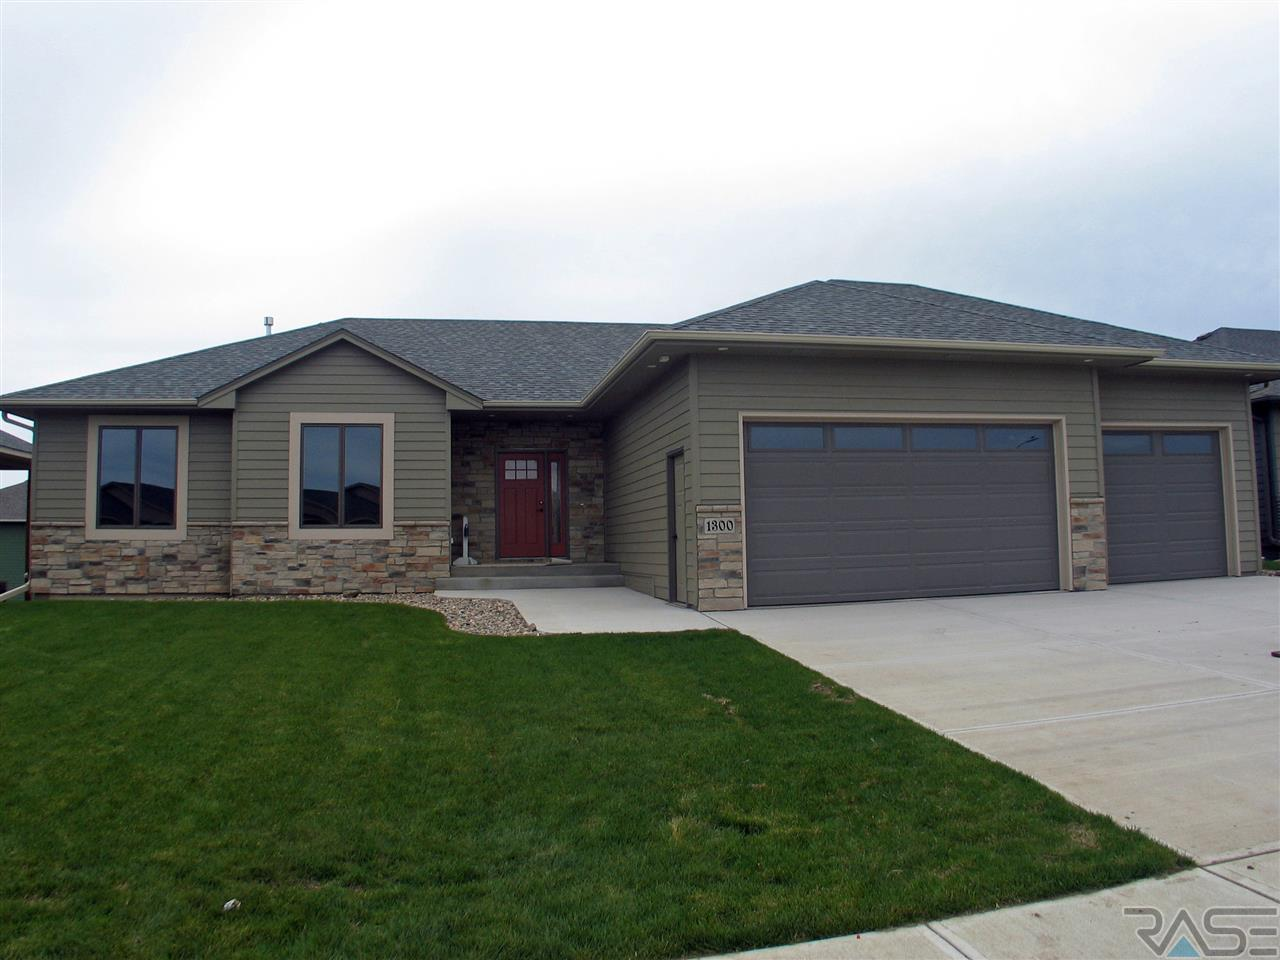 1300 South Wheatland Ave, Sioux Falls, SD 57106